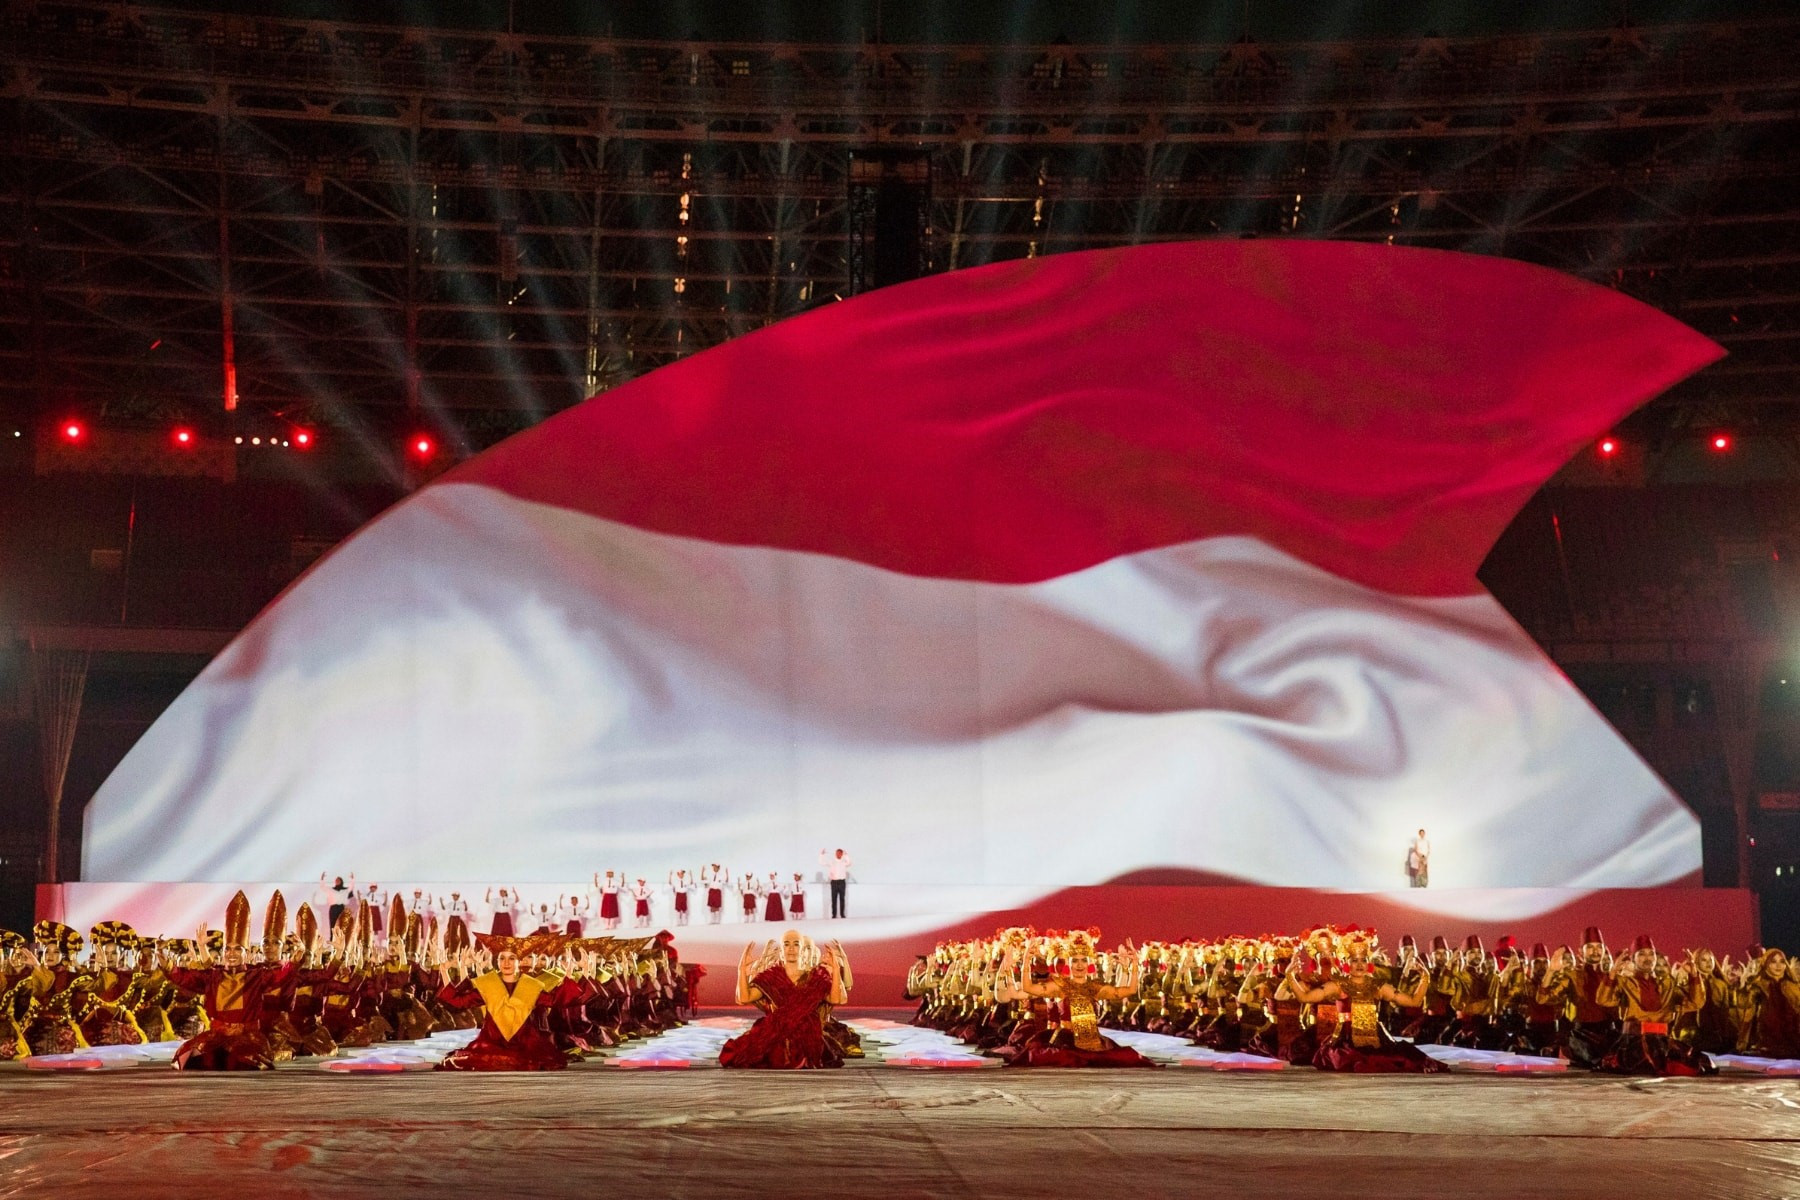 Jakarta hosted the Opening Ceremony at the Gelora Bung Karno Main Stadium ©Balich